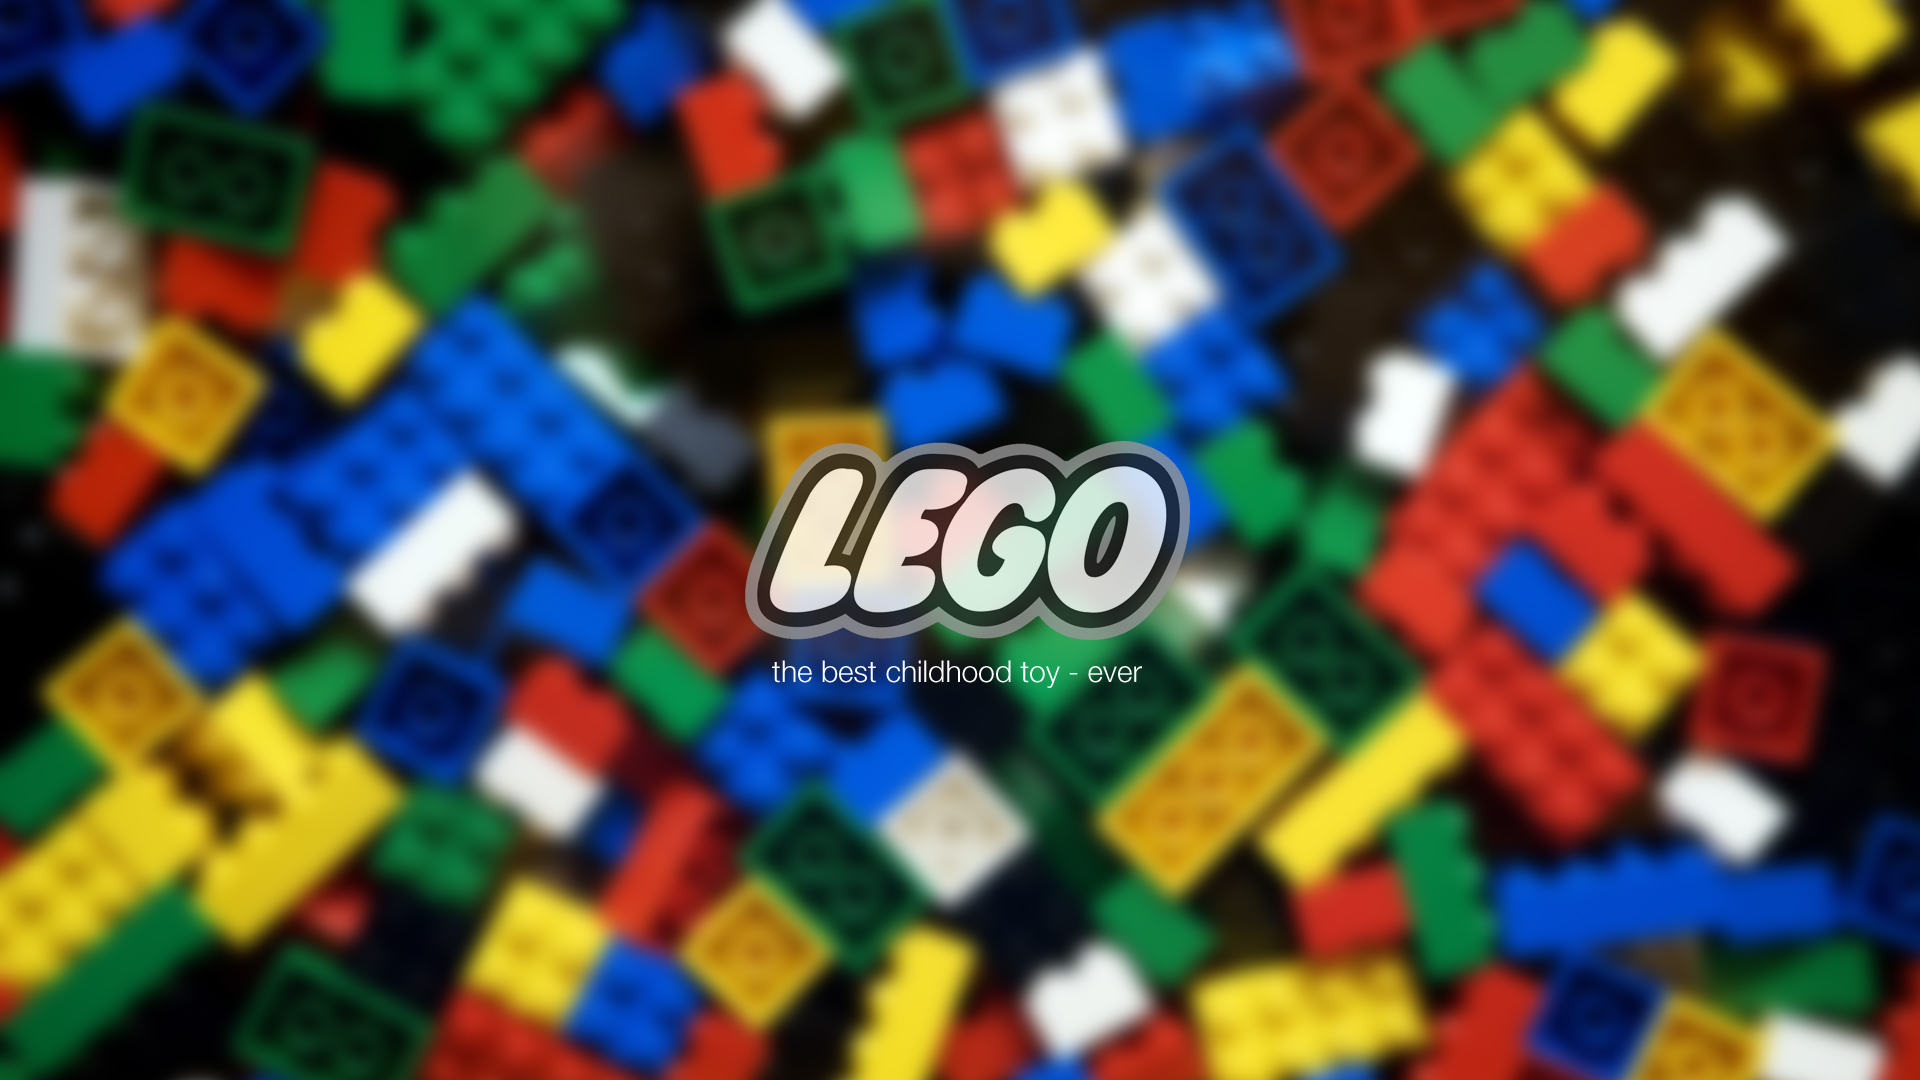 Lego wallpaper 1920x1080 39373